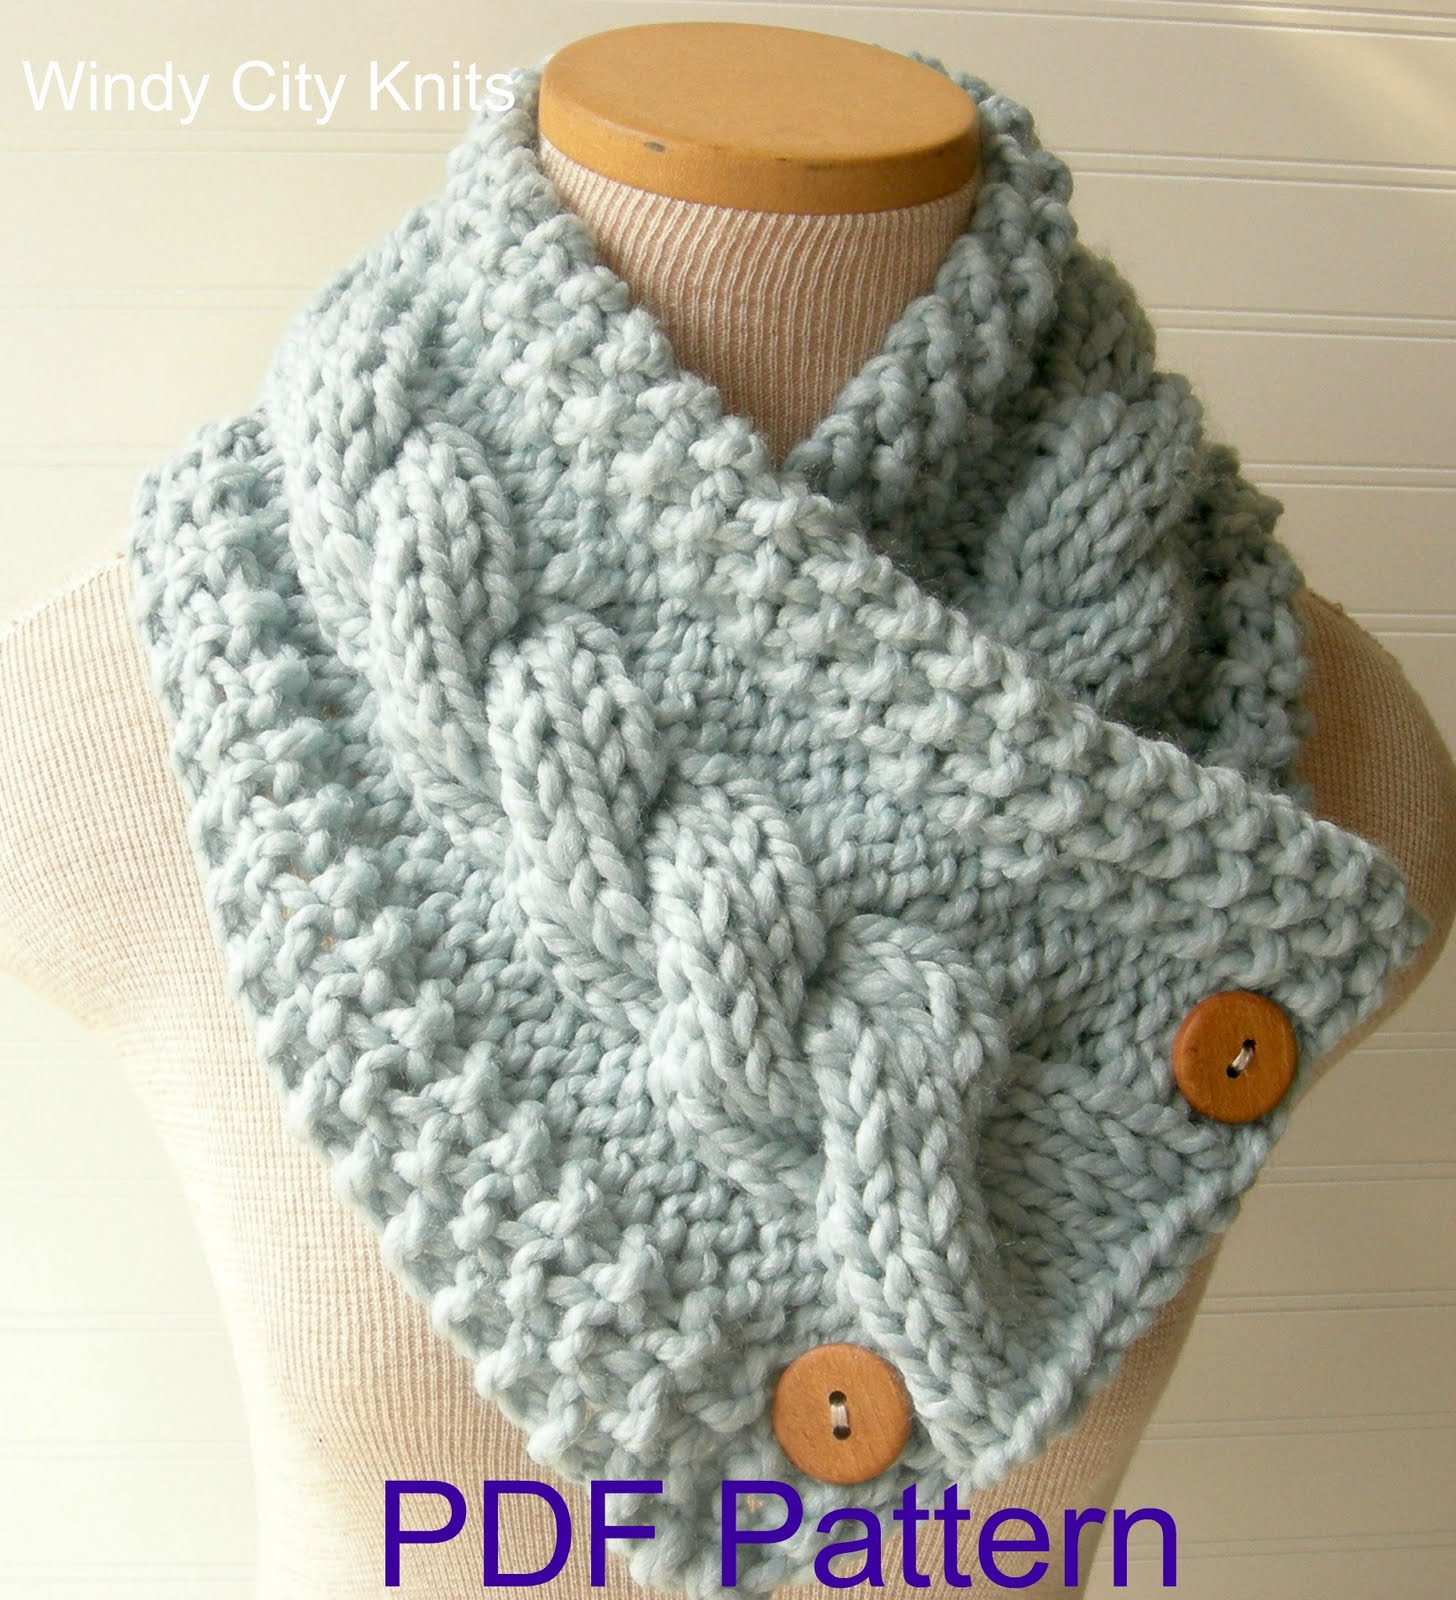 Knit Baby Hat Patterns Free : WindyCityKnits: Knit Cable Cowl Scarf Pattern Pdf